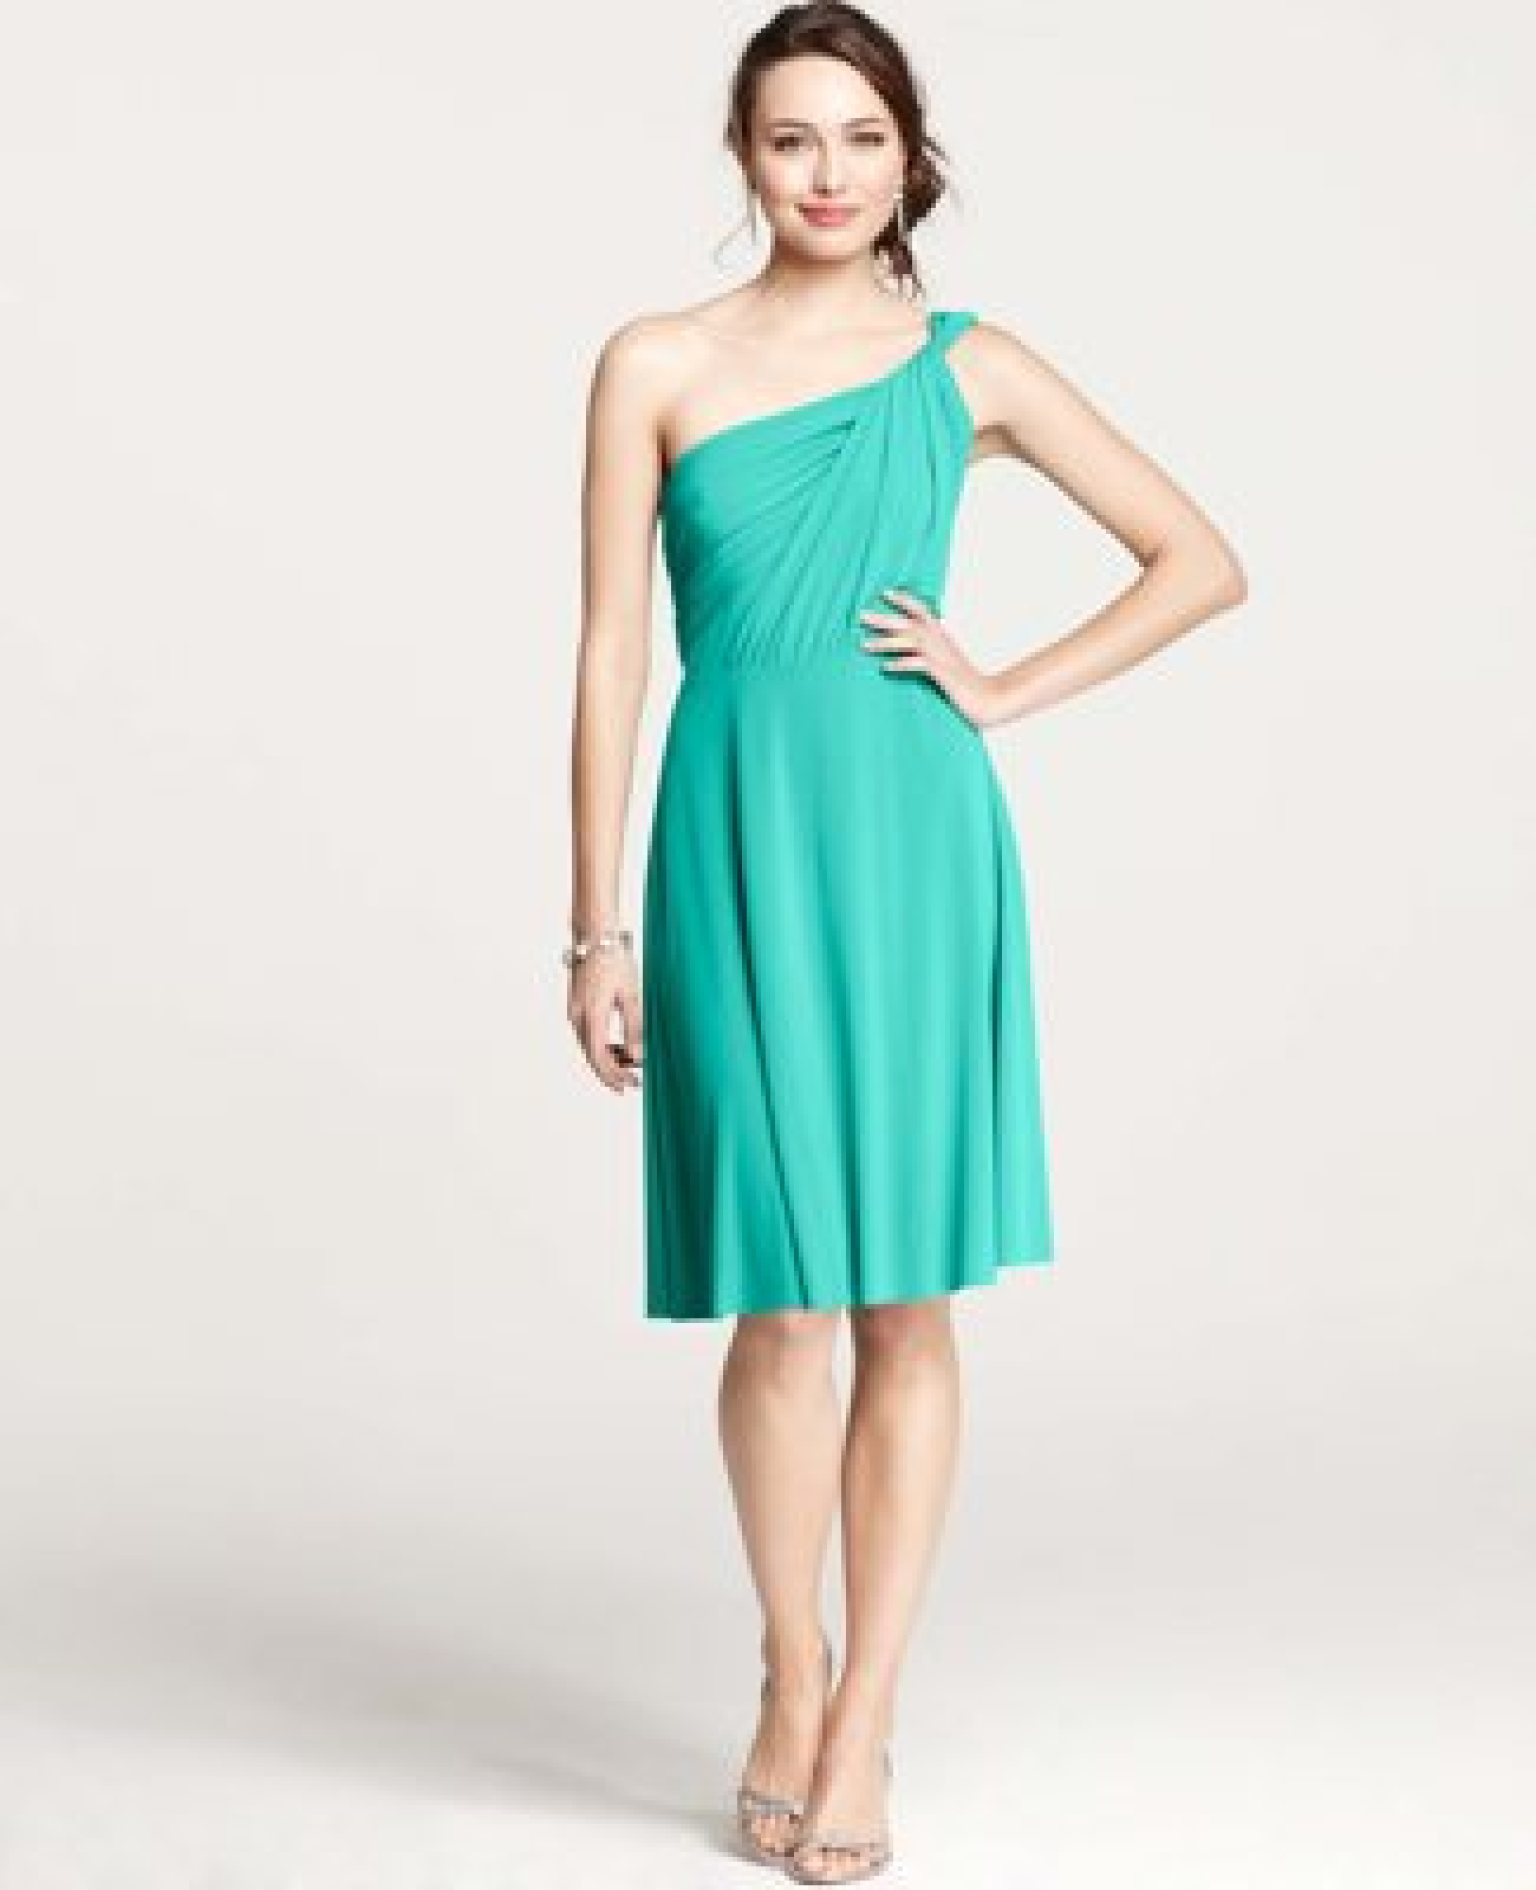 Wedding guest dresses for summer affairs photos for Dresses to wear to weddings as a guest